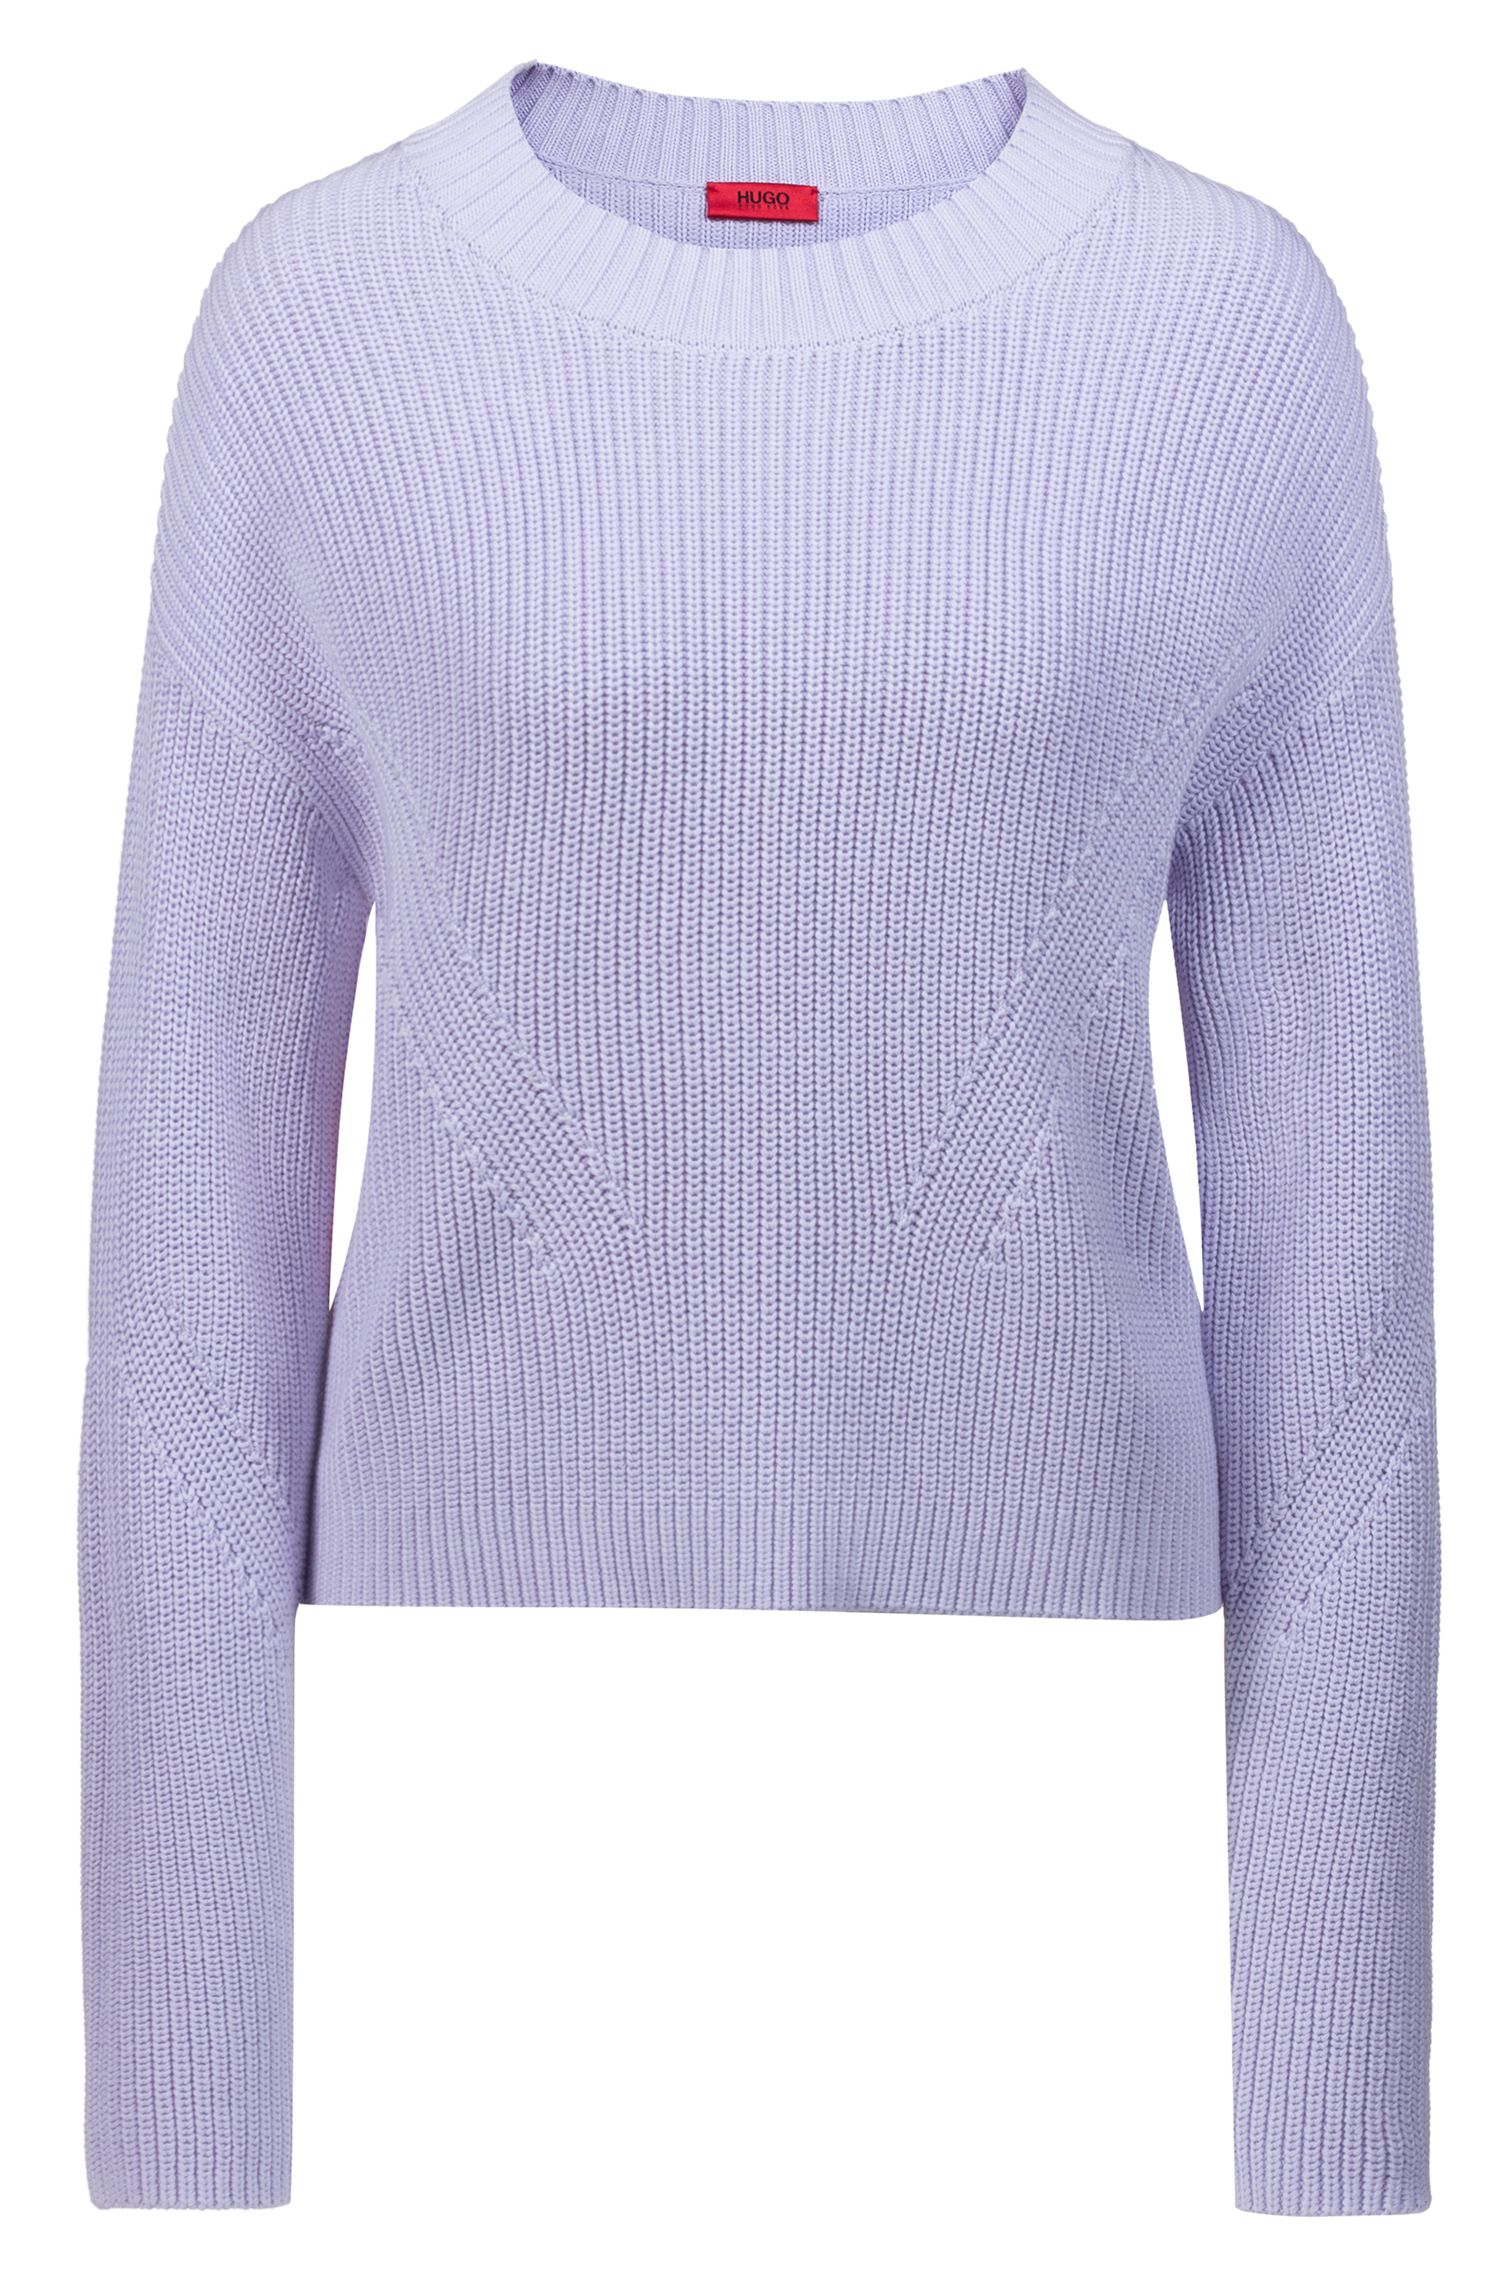 Relaxed-Fit Pullover in Cropped-Länge mit kontrastfarbenen Bändern, Lila